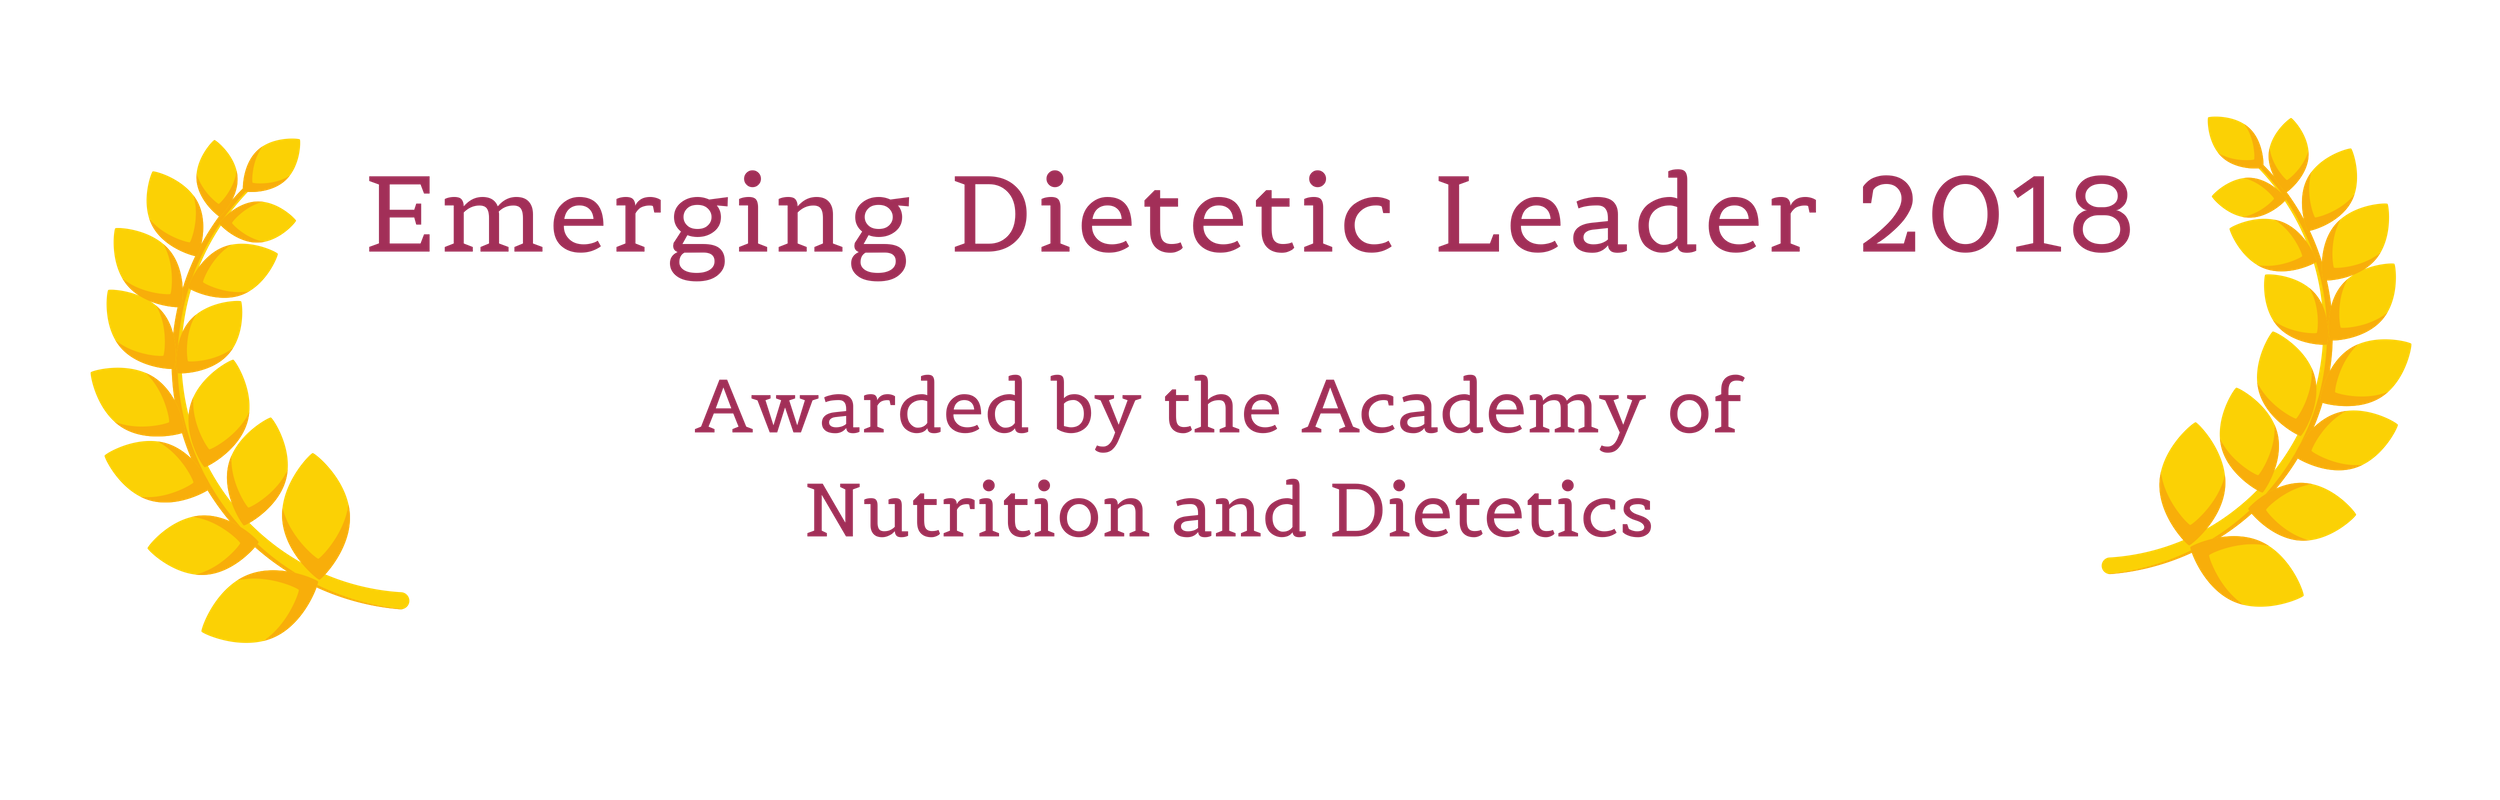 Stephanie Paver is the Emerging Dietetic Leader of 2018, awarded by the Academy of Nutrition and Dietetics